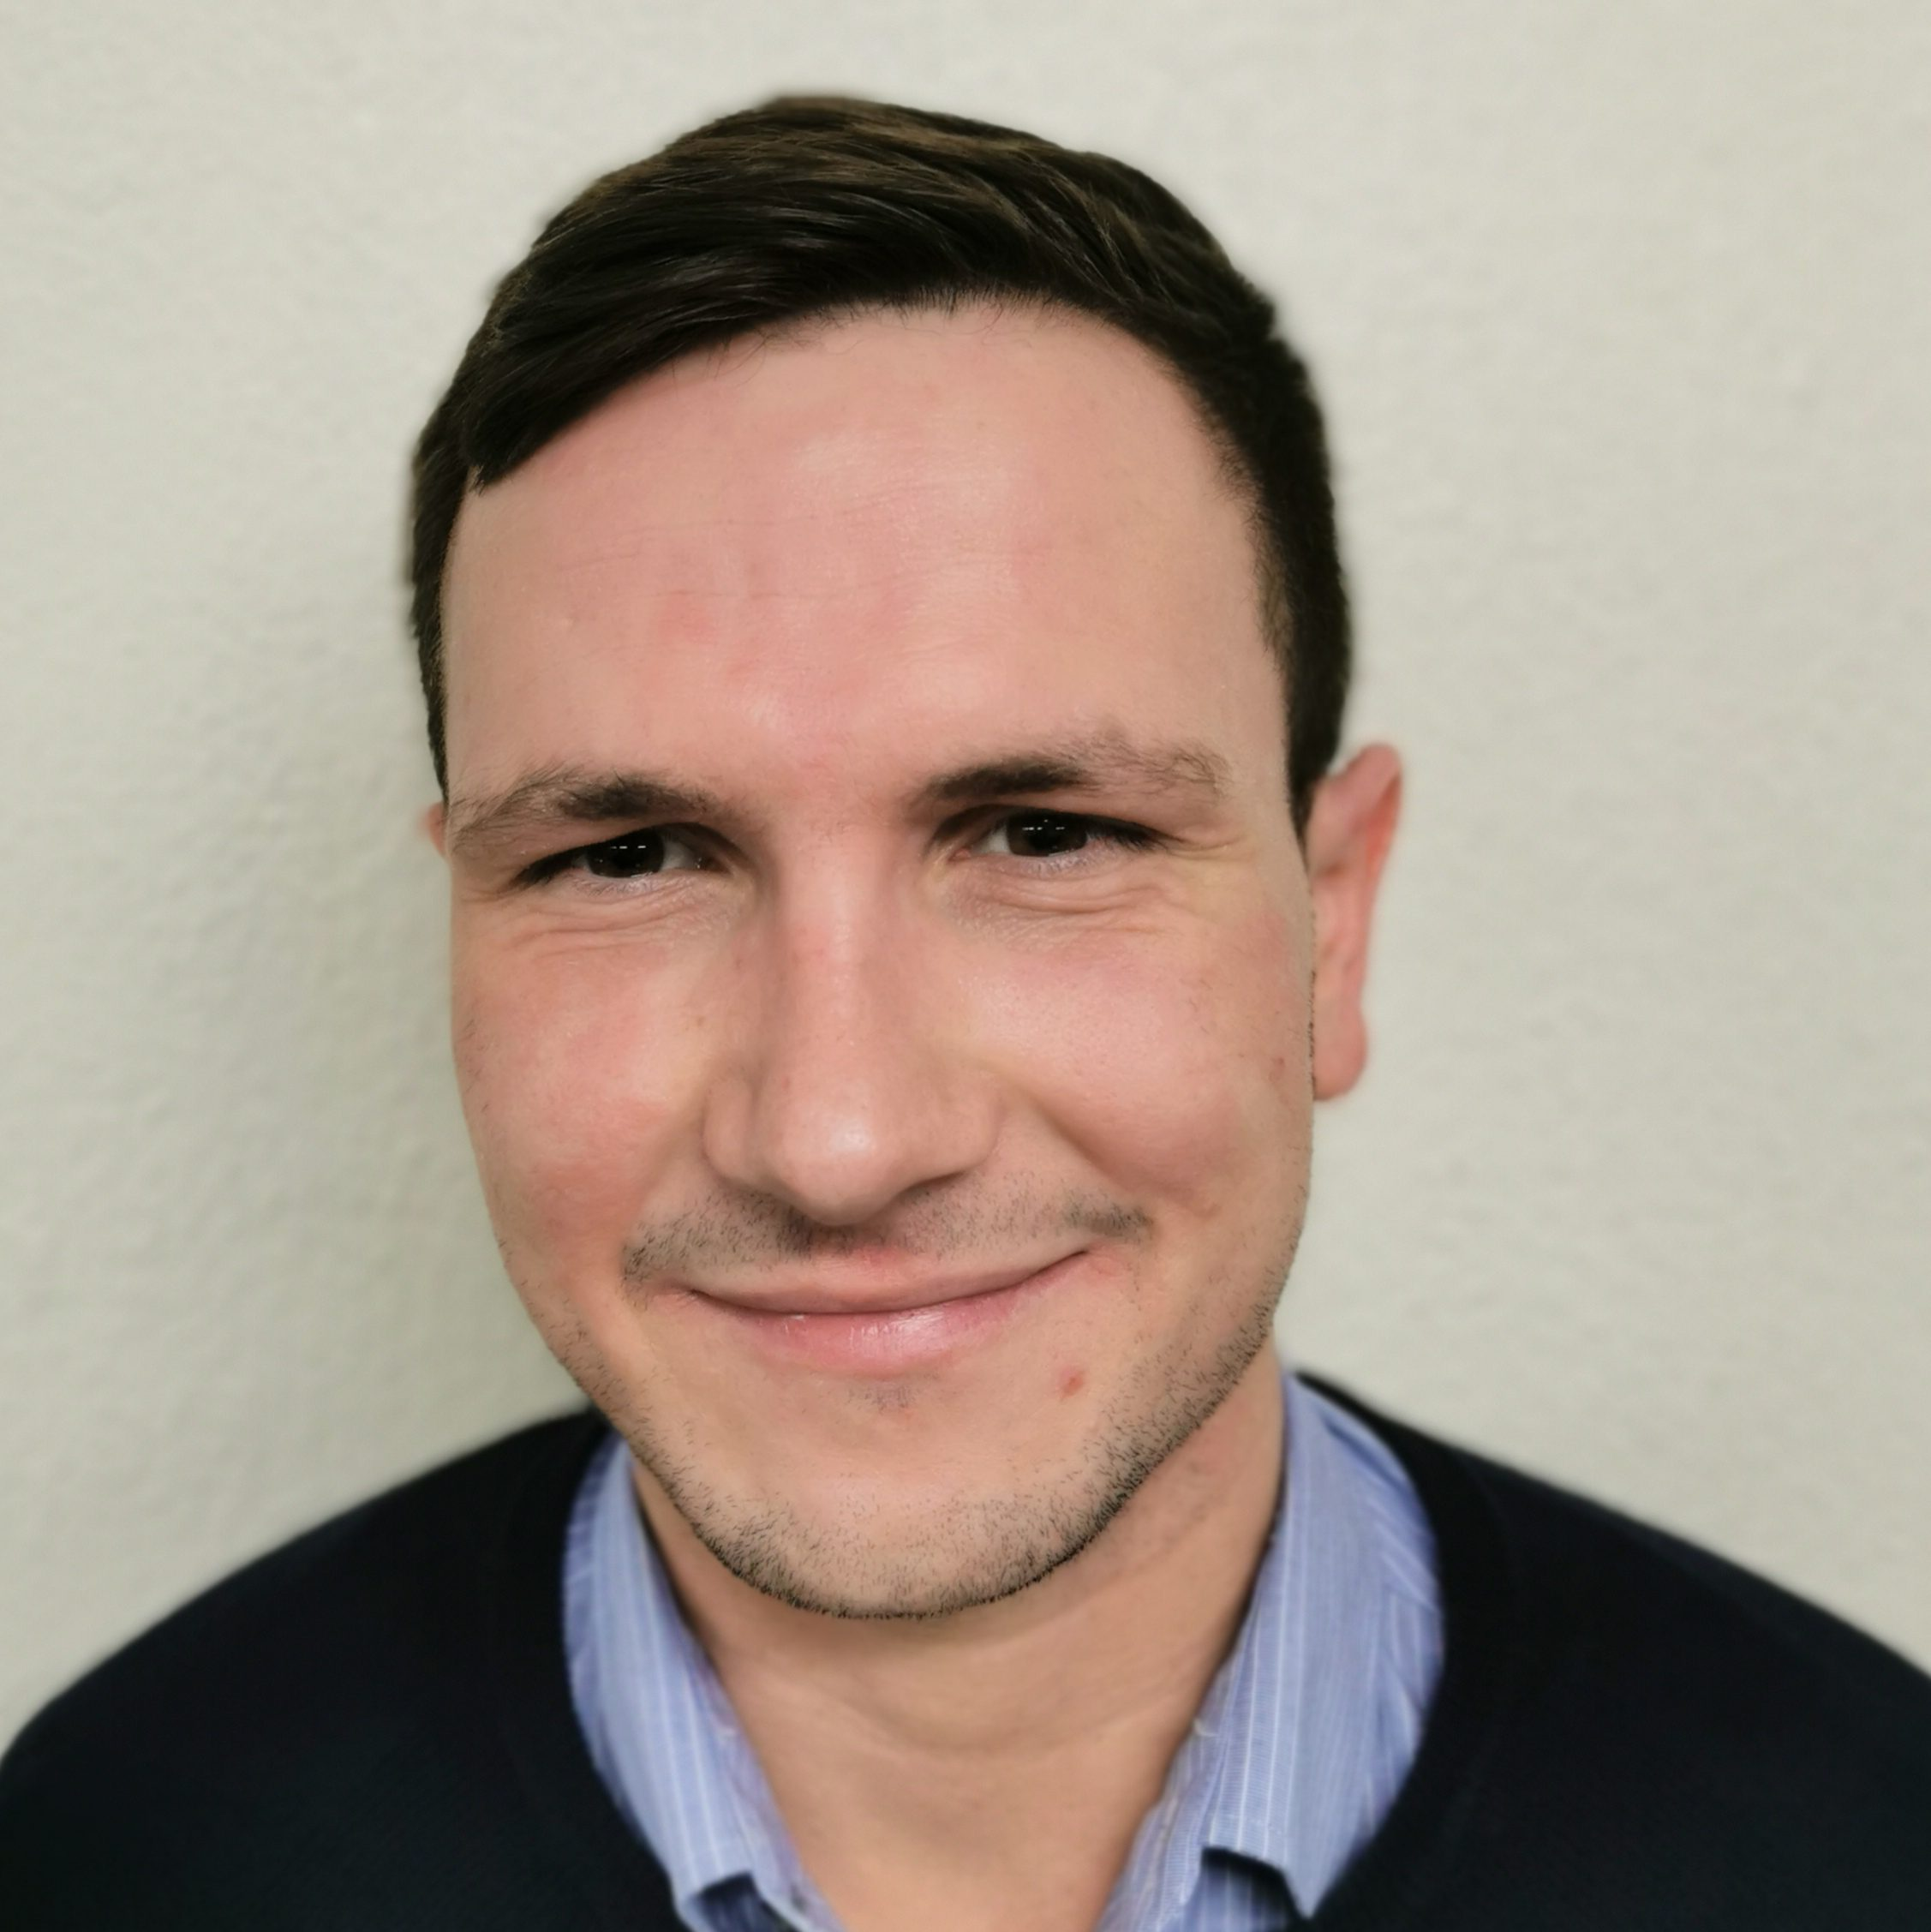 James Baron - Internal Account Manager